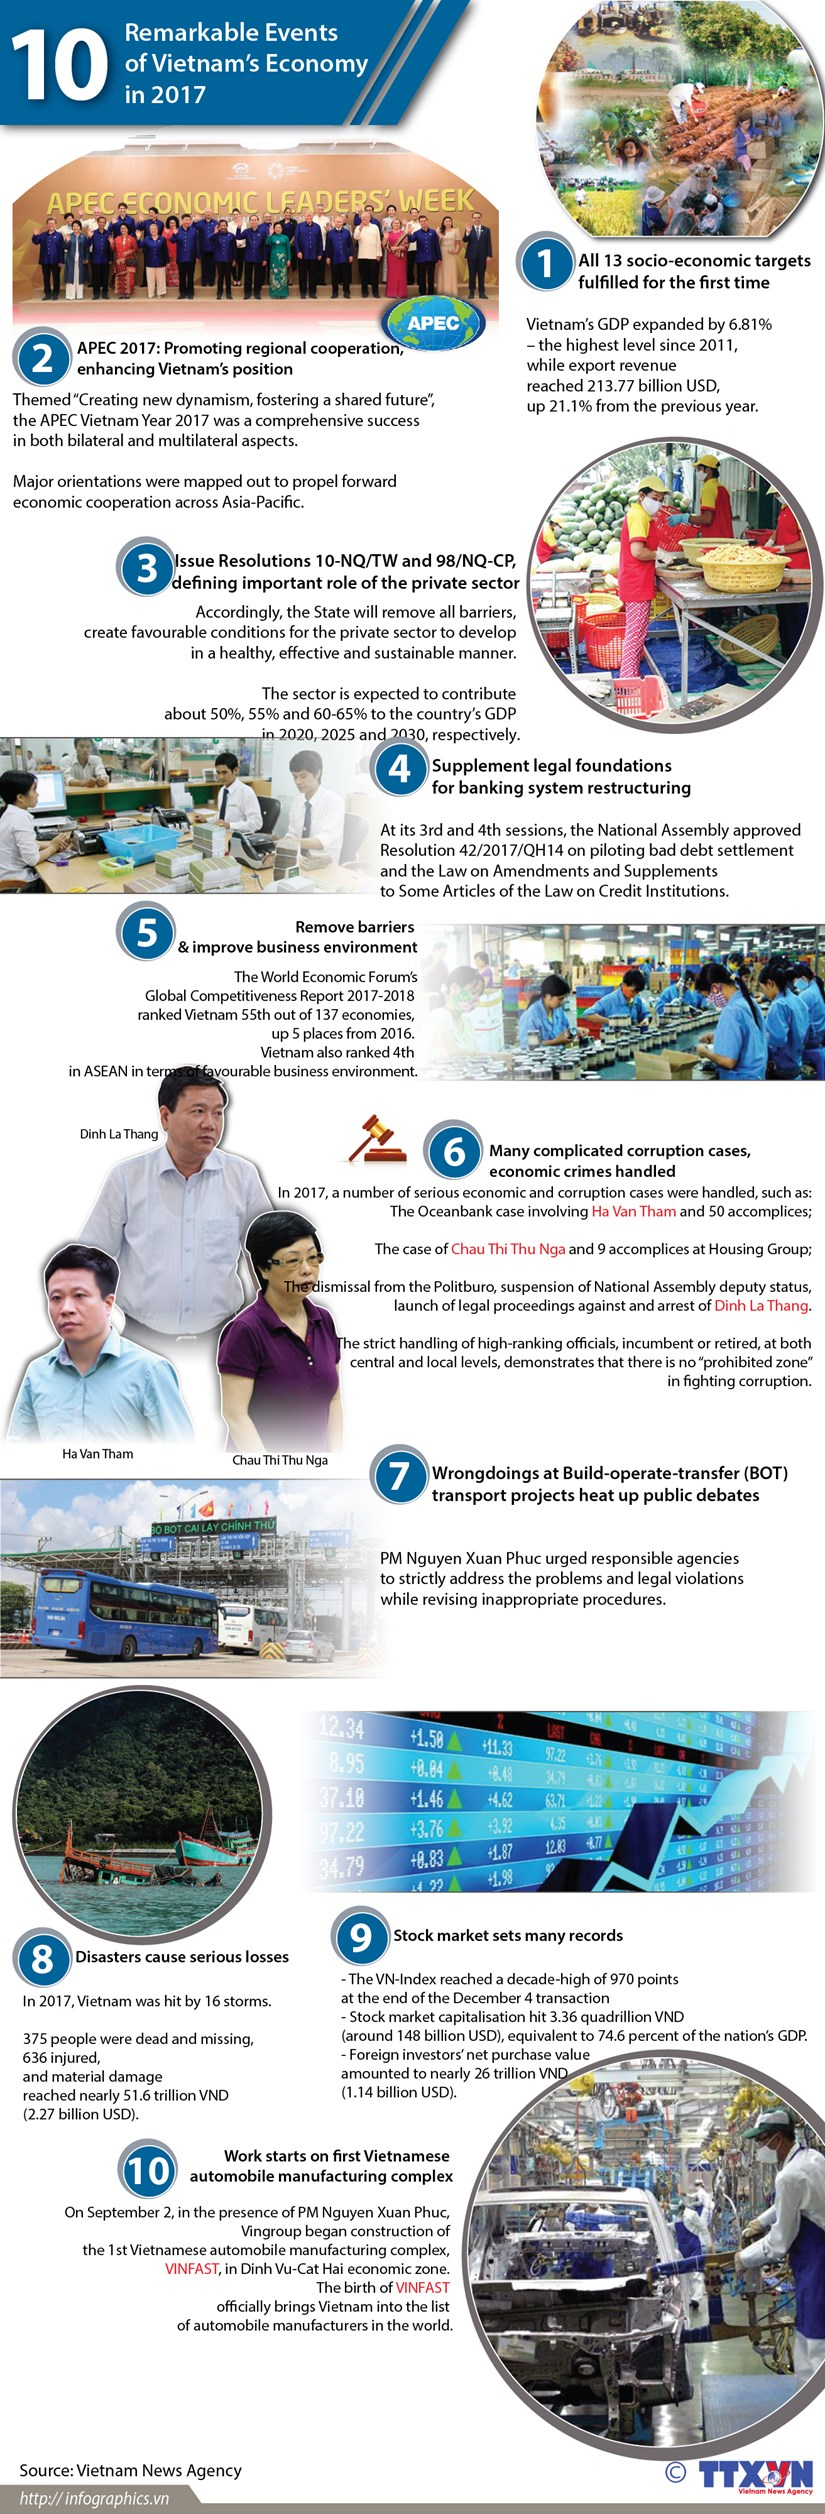 Top 10 economic events of Vietnam in 2017 hinh anh 1